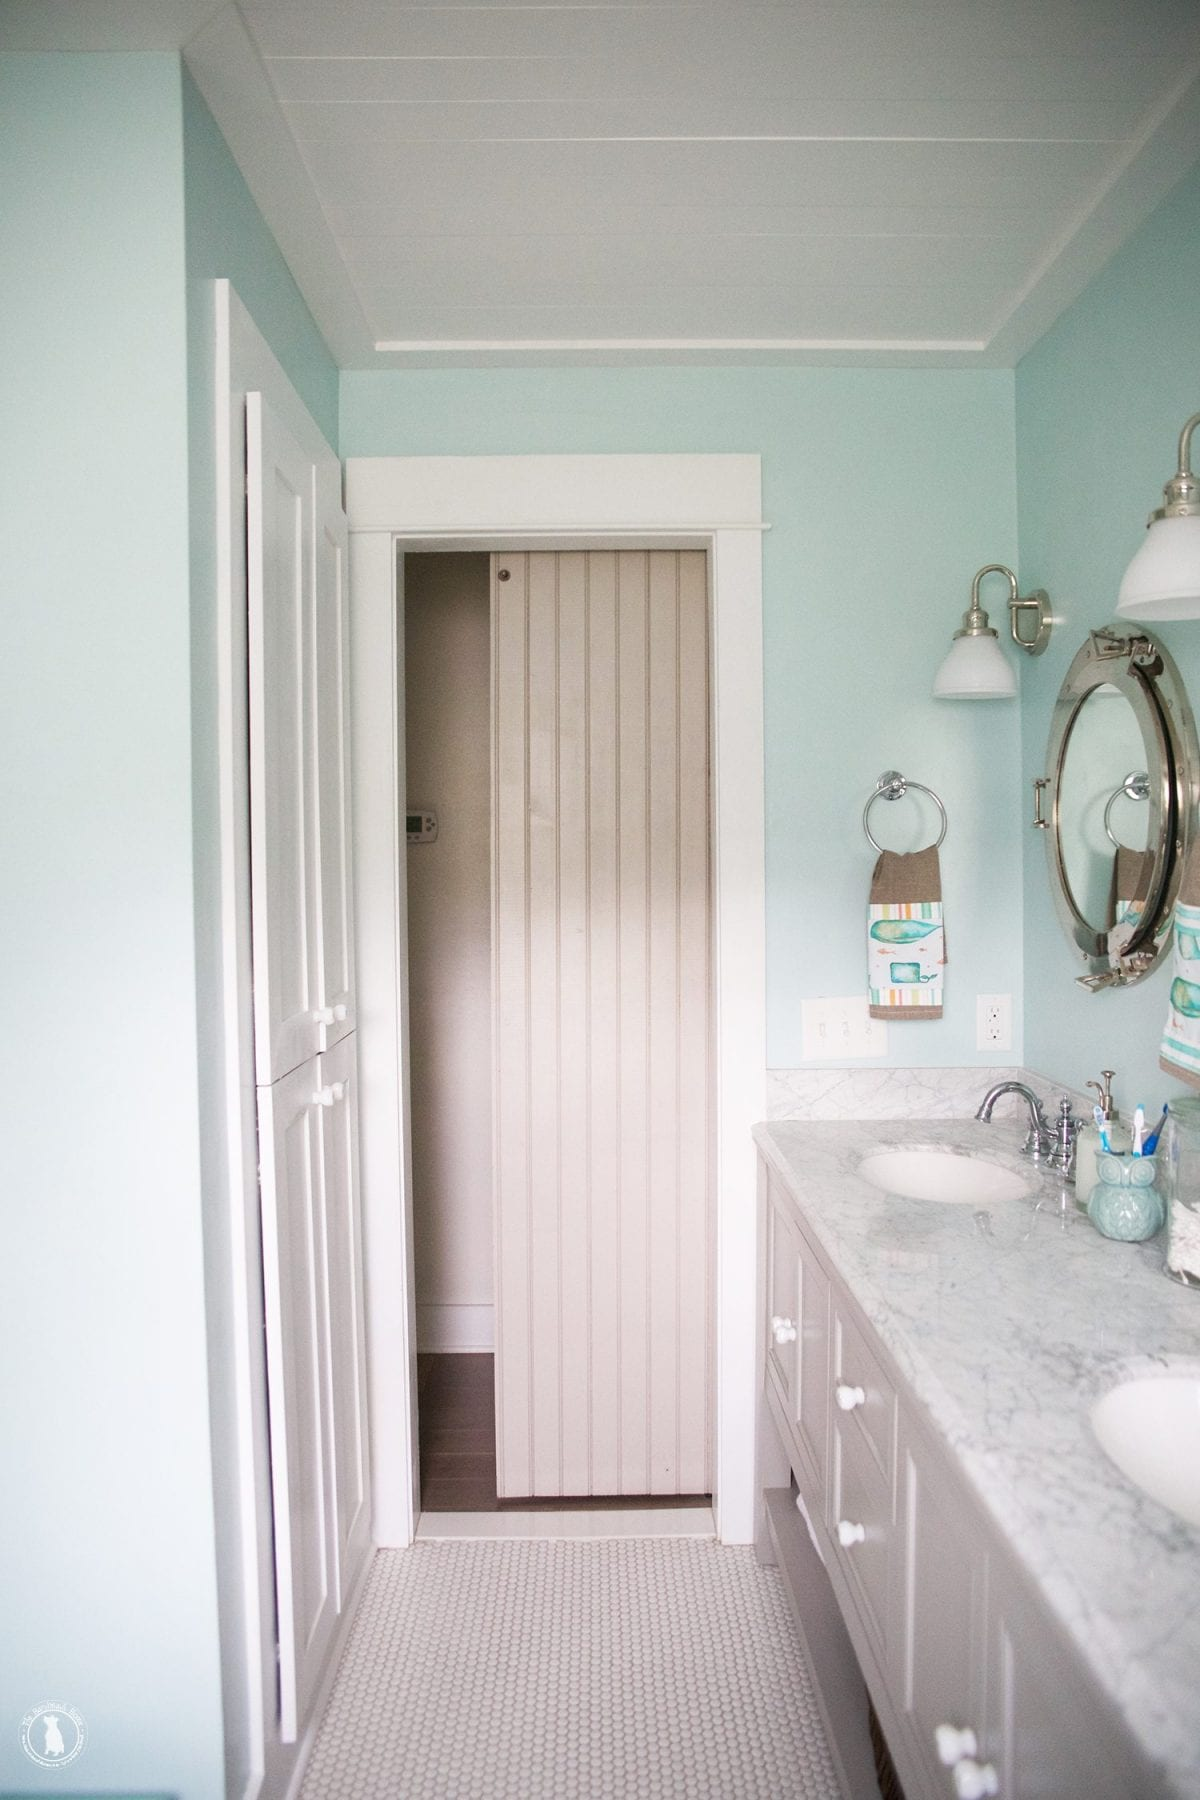 how to add a lock to a barn door - before